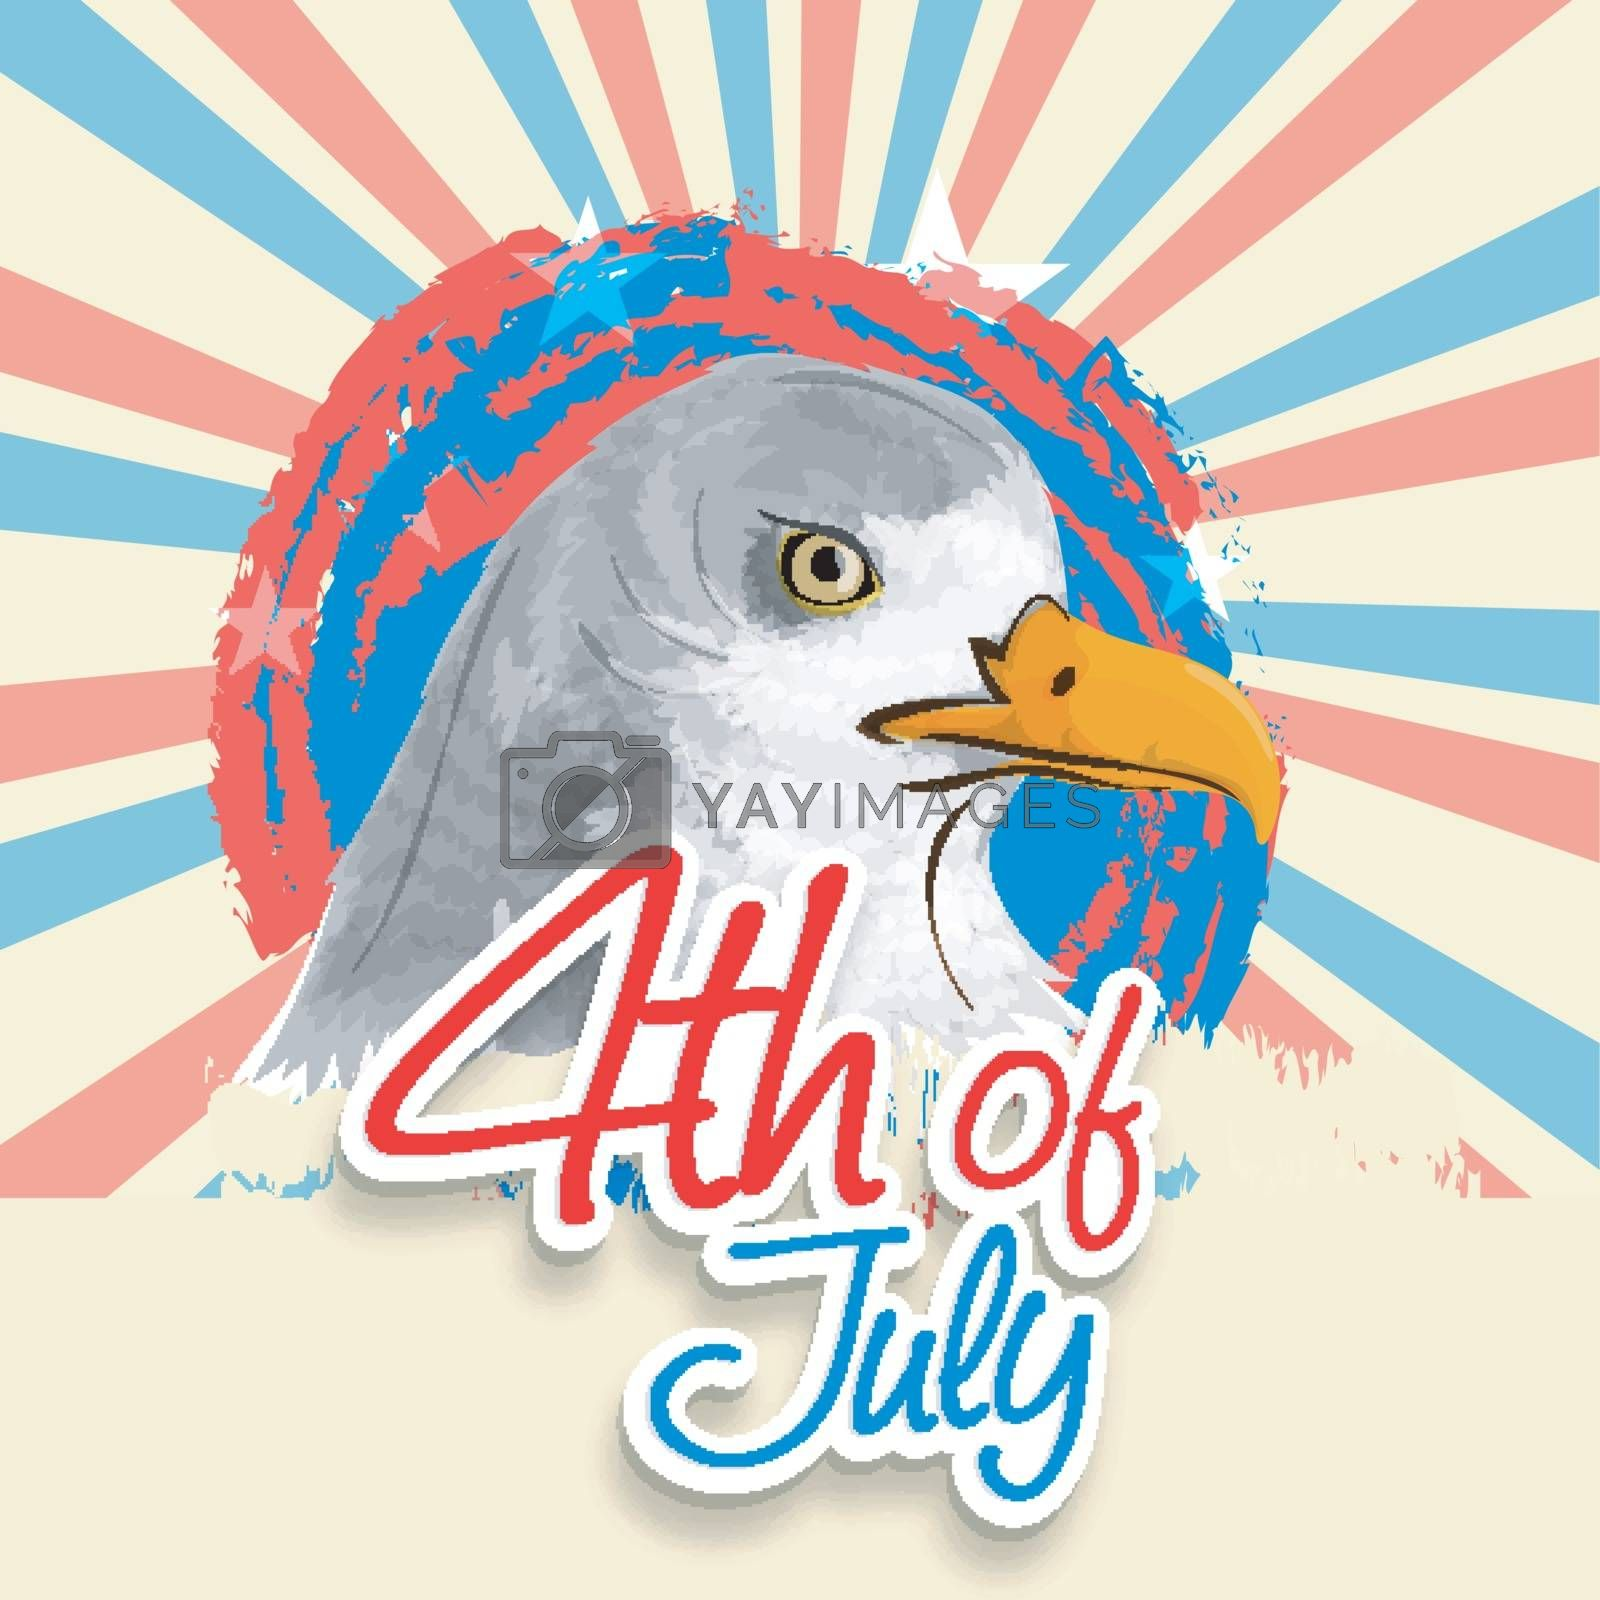 American National Bird Eagle on vintage rays background for 4th of July, Independence Day concept.